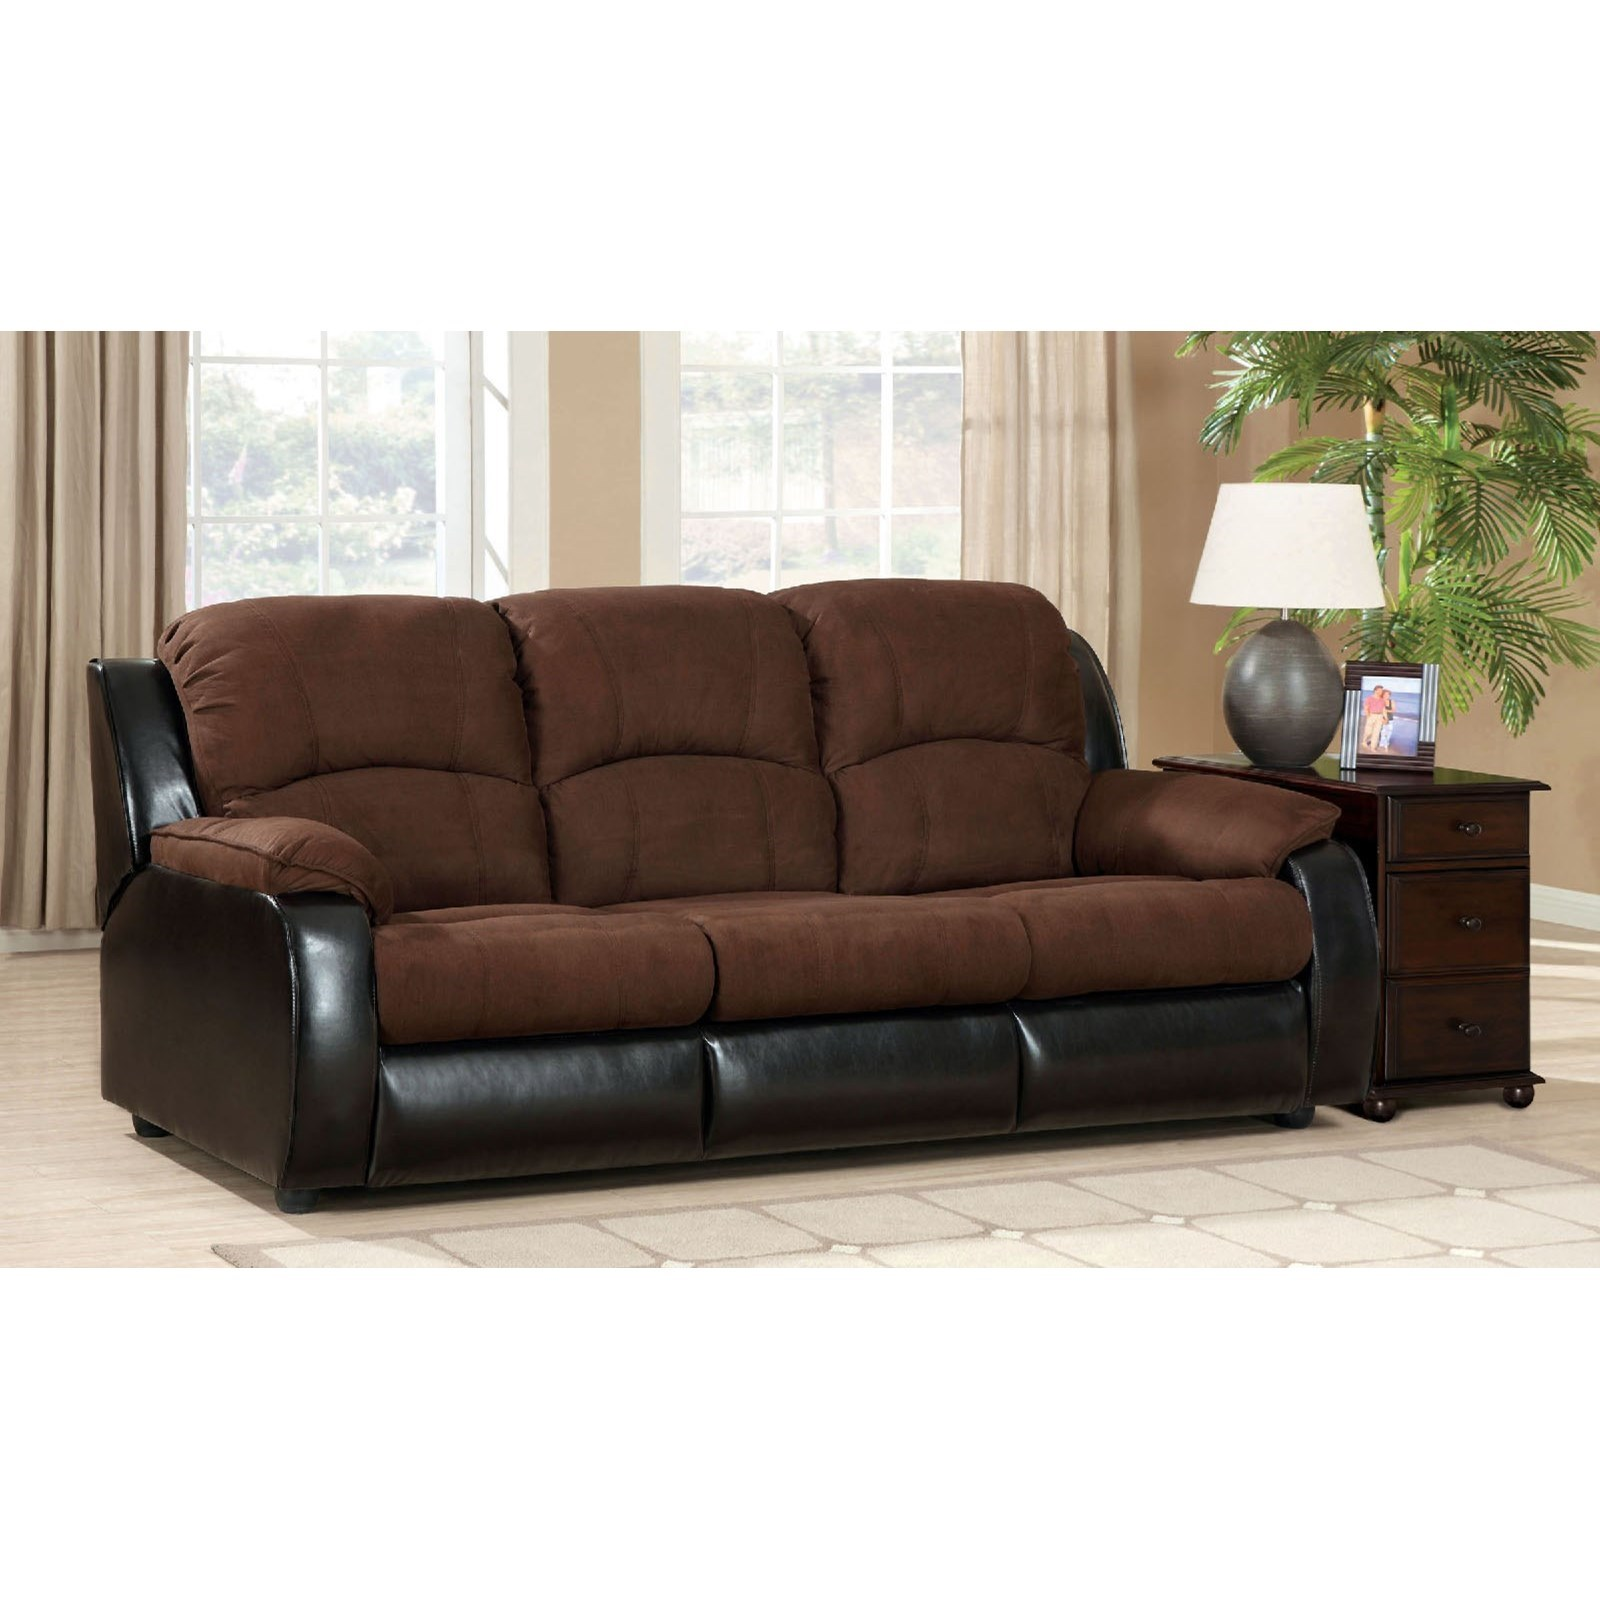 Grande Two Tone Queen Sleeper Sofa In